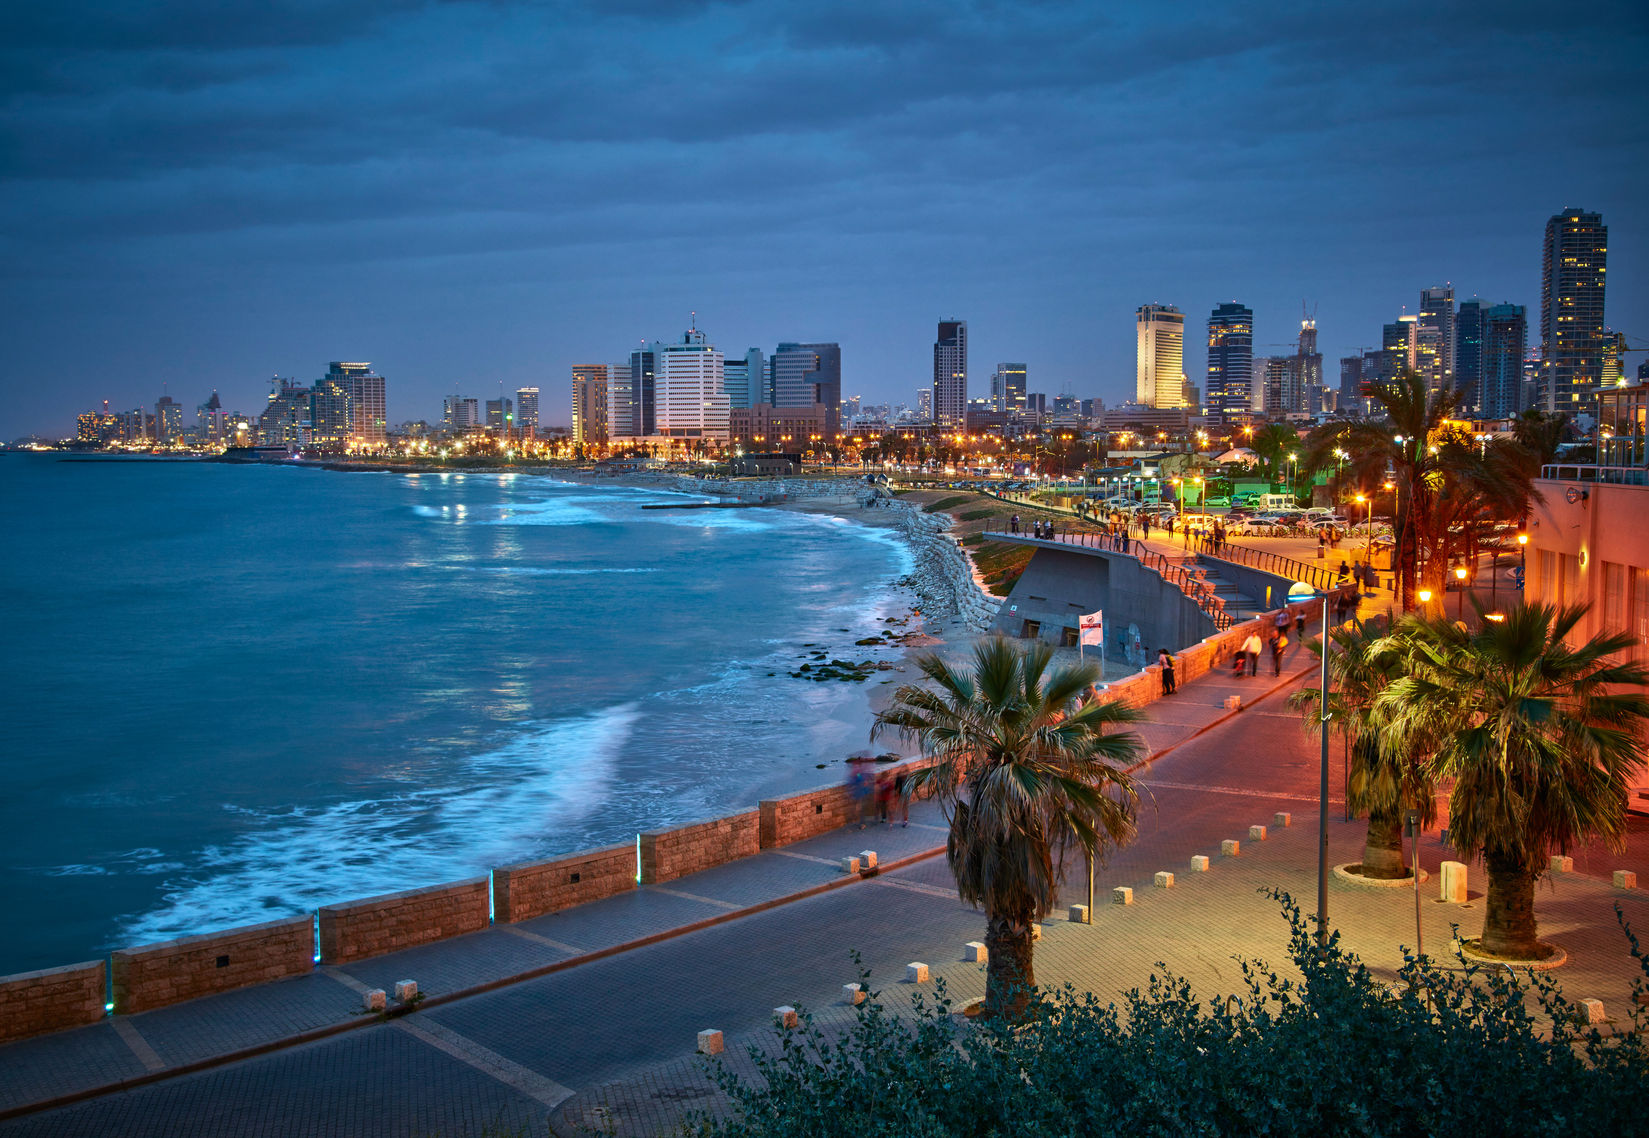 66677186 - waterfront of tel aviv. night view from jaffa.